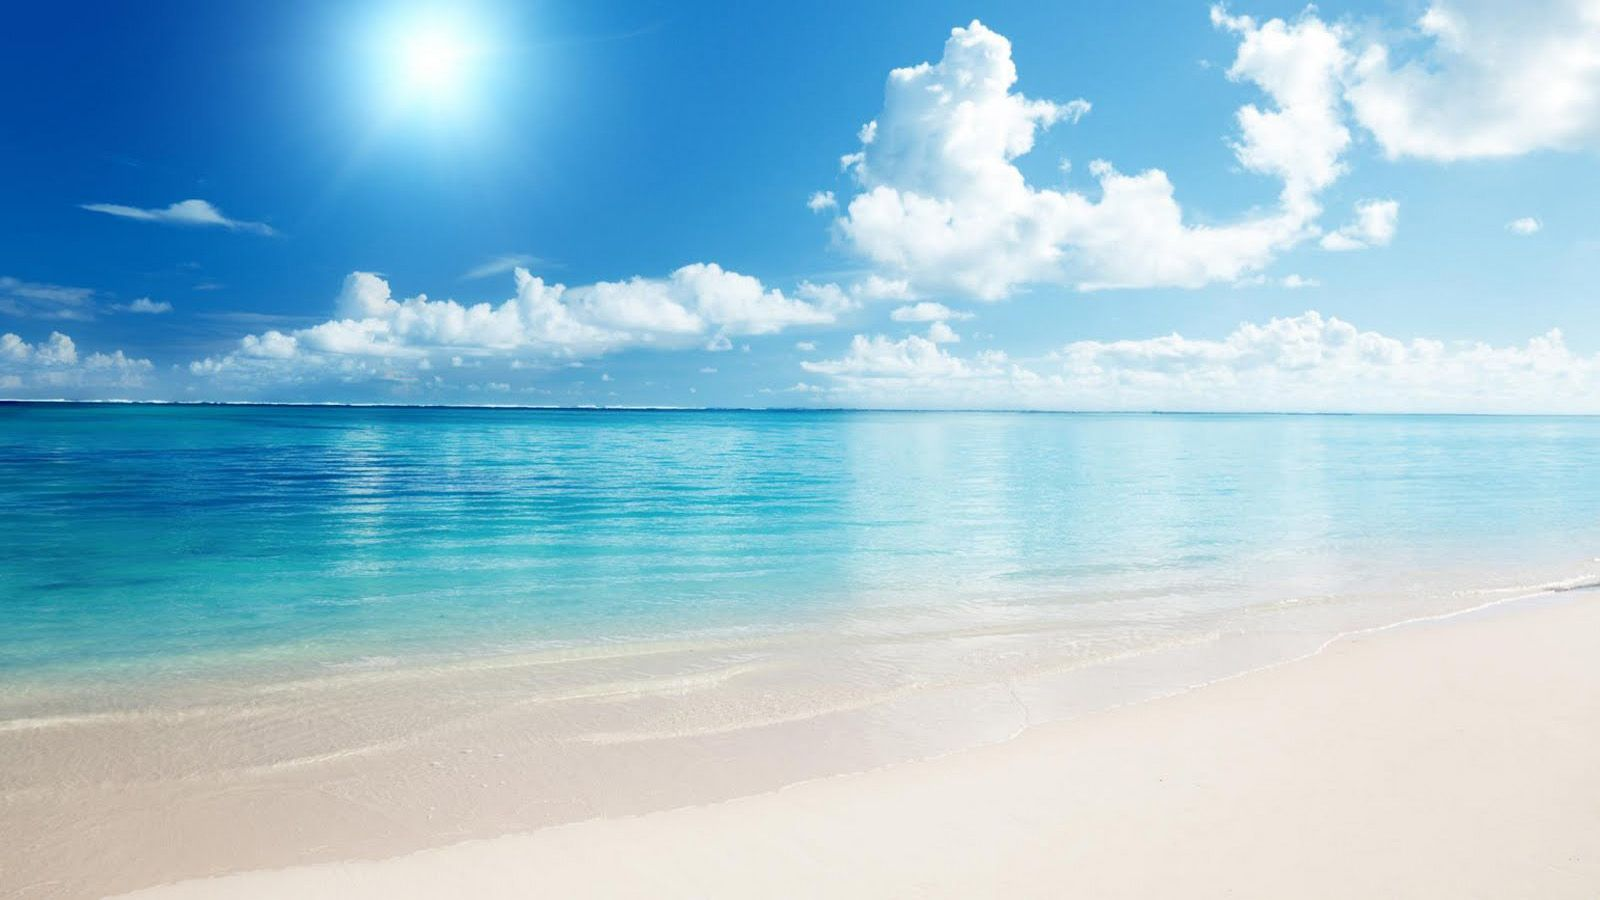 Background image beach - Beach Backgrounds 7343 Hd Wallpapers Background Screen In Nature Wallpaperid Com Beach Pinterest Beach Wallpaper Beach And Wallpaper